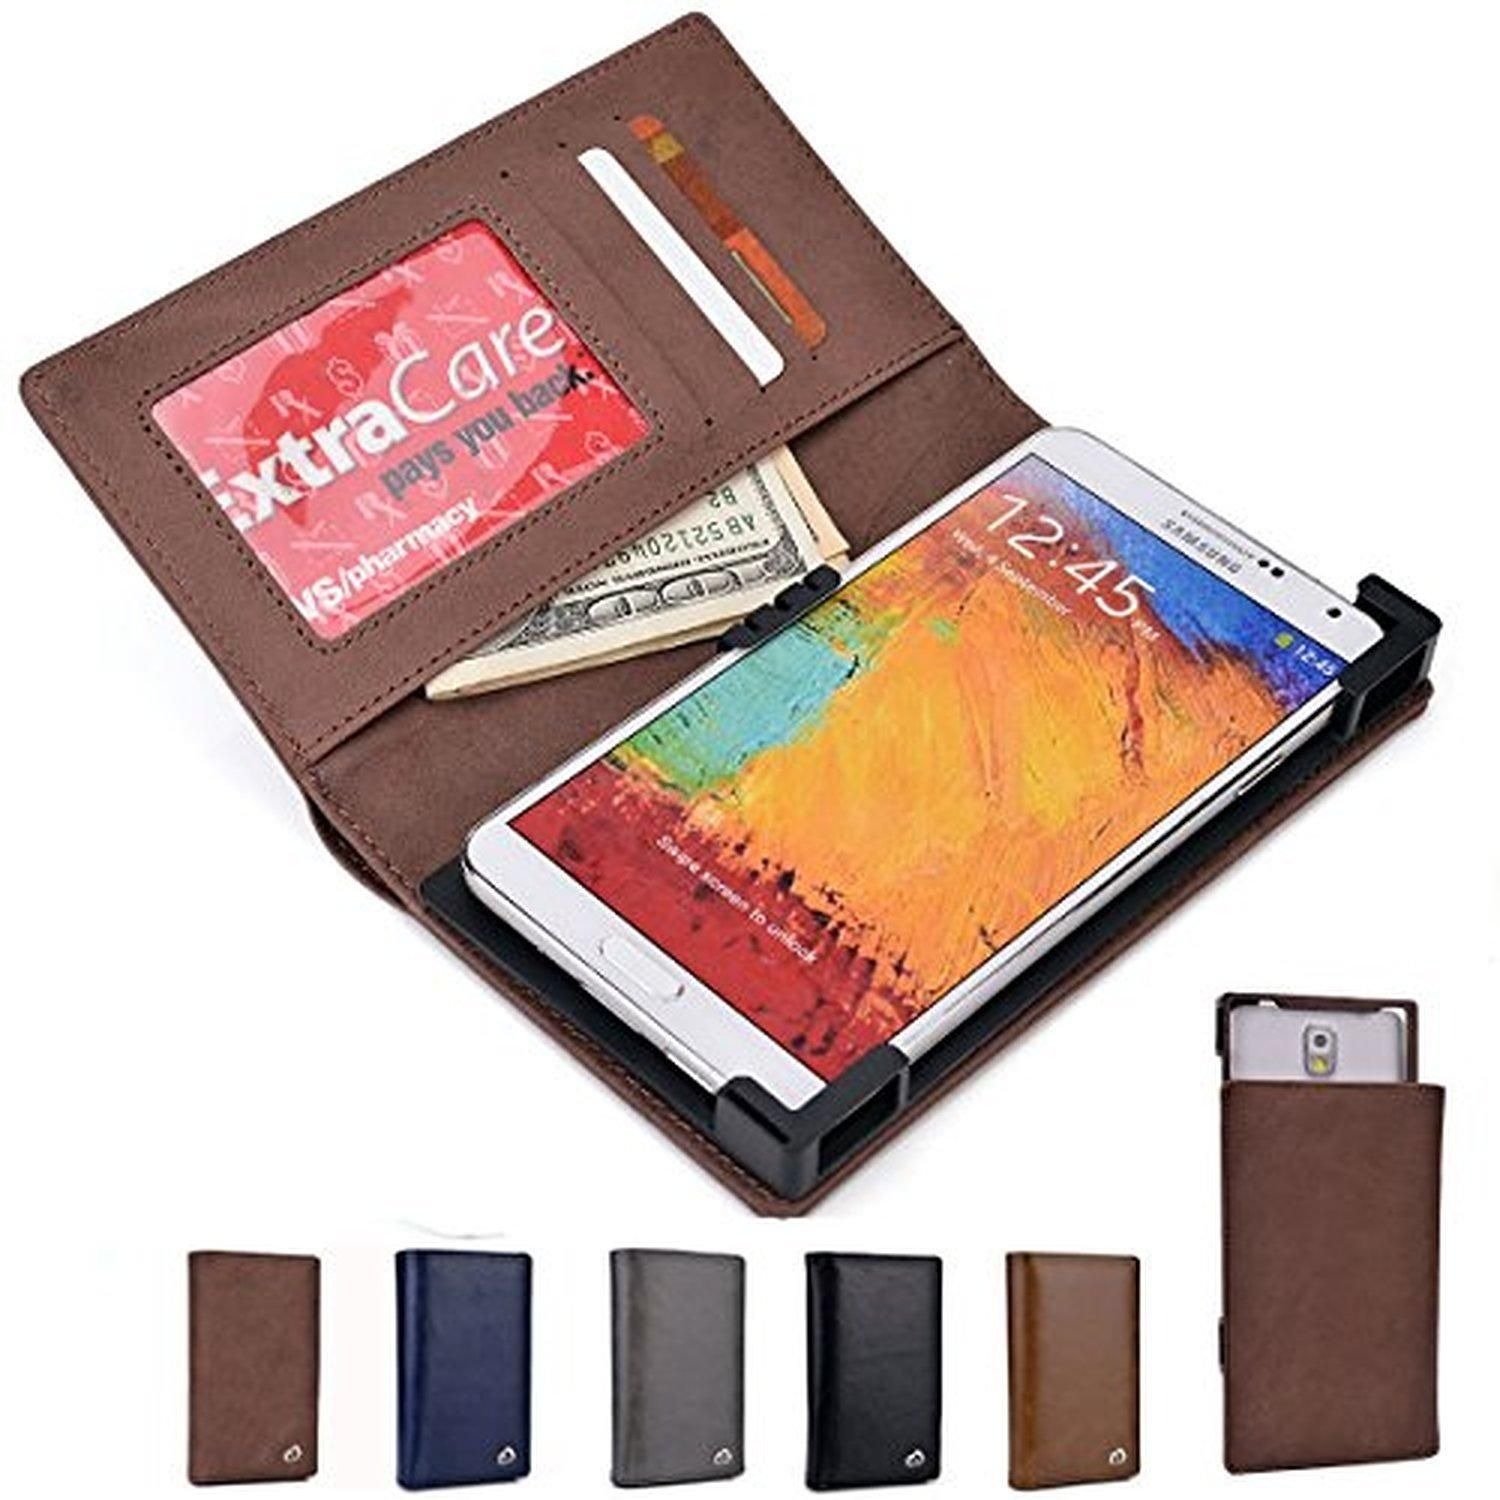 Kroo Mocha Genuine Leather BiFold Wallet with Universal Phone Holder for Lenovo A850+, A916, Golden Warrior S8, K80, P90, S856, S90 Sisley, Vibe X S960, Vibe X2 Pro, Vibe Z2 - Brought to you by Avarsha.com